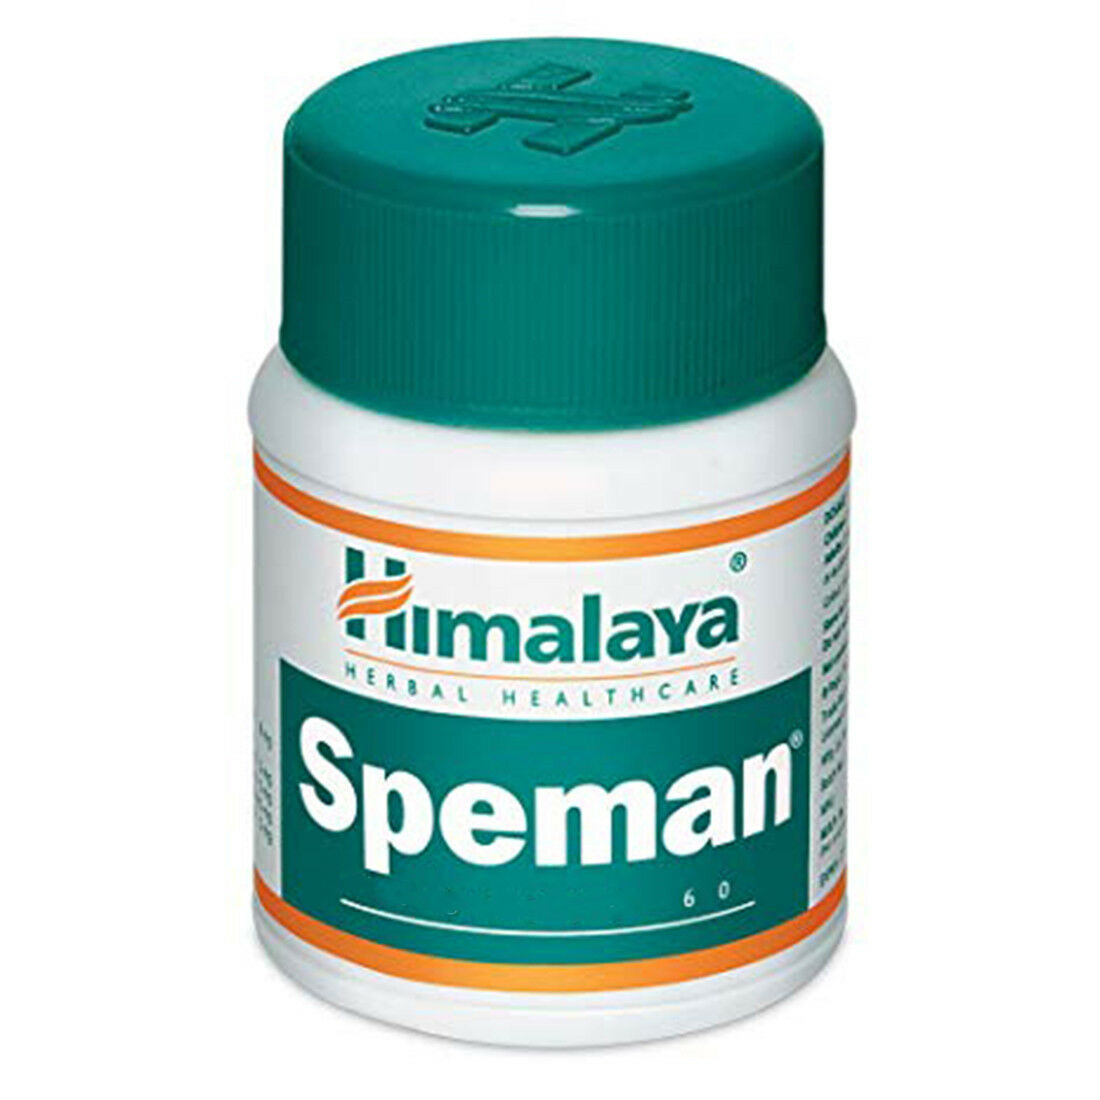 Speman Herbals 60 Pcs Improves Male Fertility And Increases Sperm Count, Male Body Care Herbal Extracts